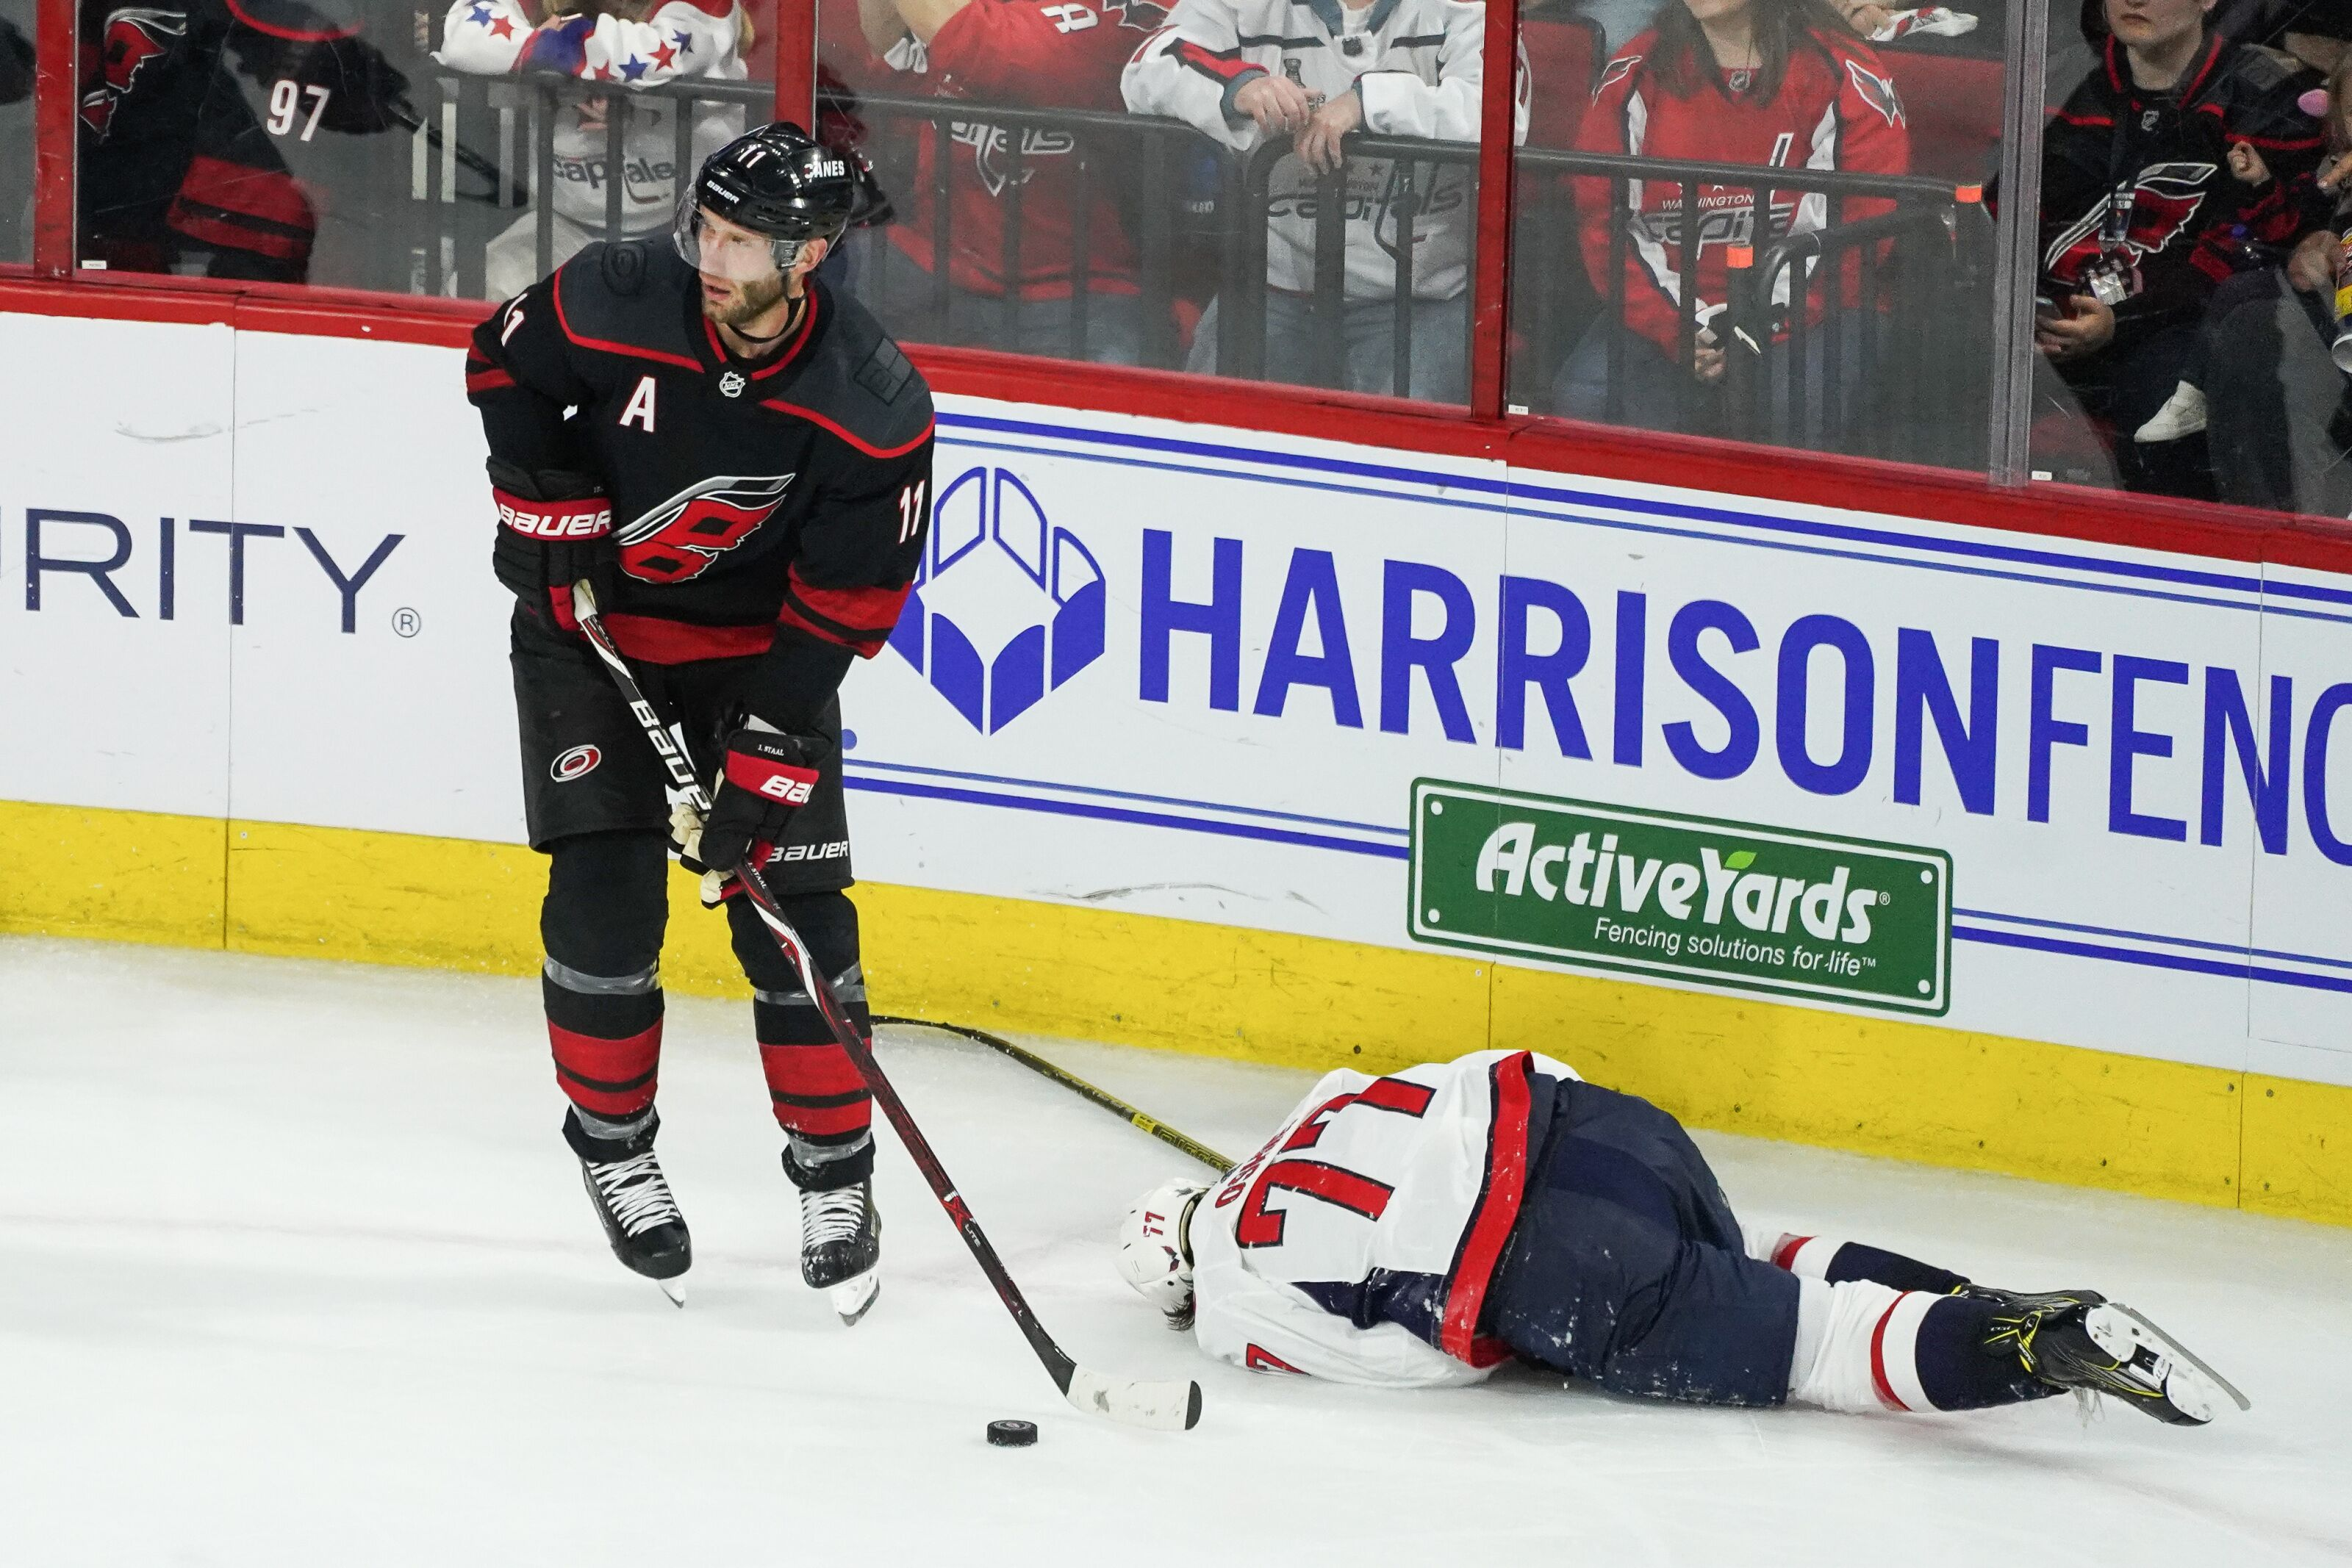 buy online d21dd fab67 Washington Capitals: T.J. Oshie Out Indefinitely; Capitals ...